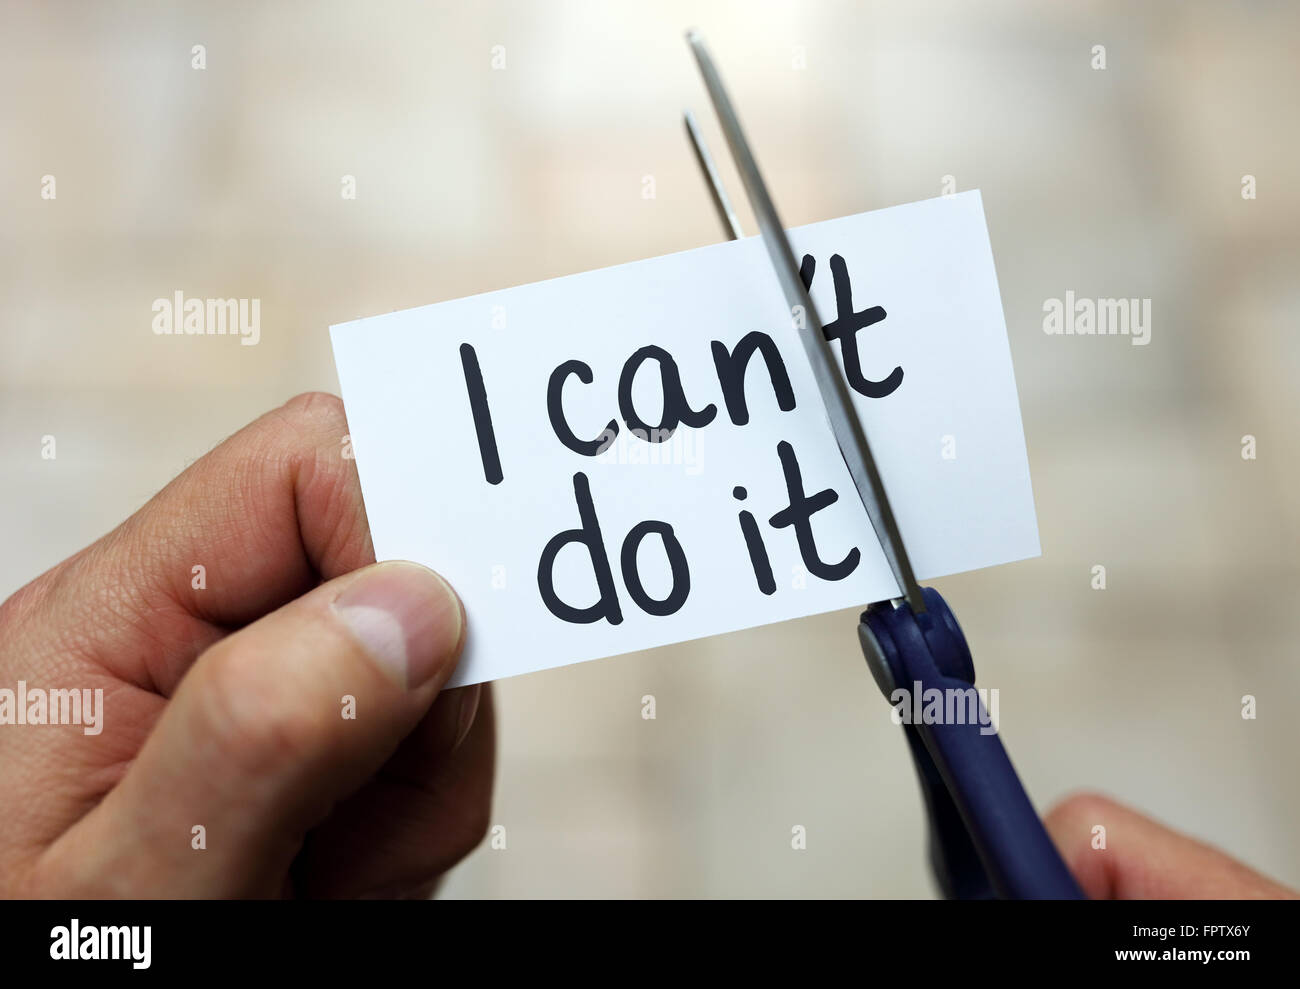 Man using scissors to remove the word can't to read I can do it concept for self belief, positive attitude and - Stock Image